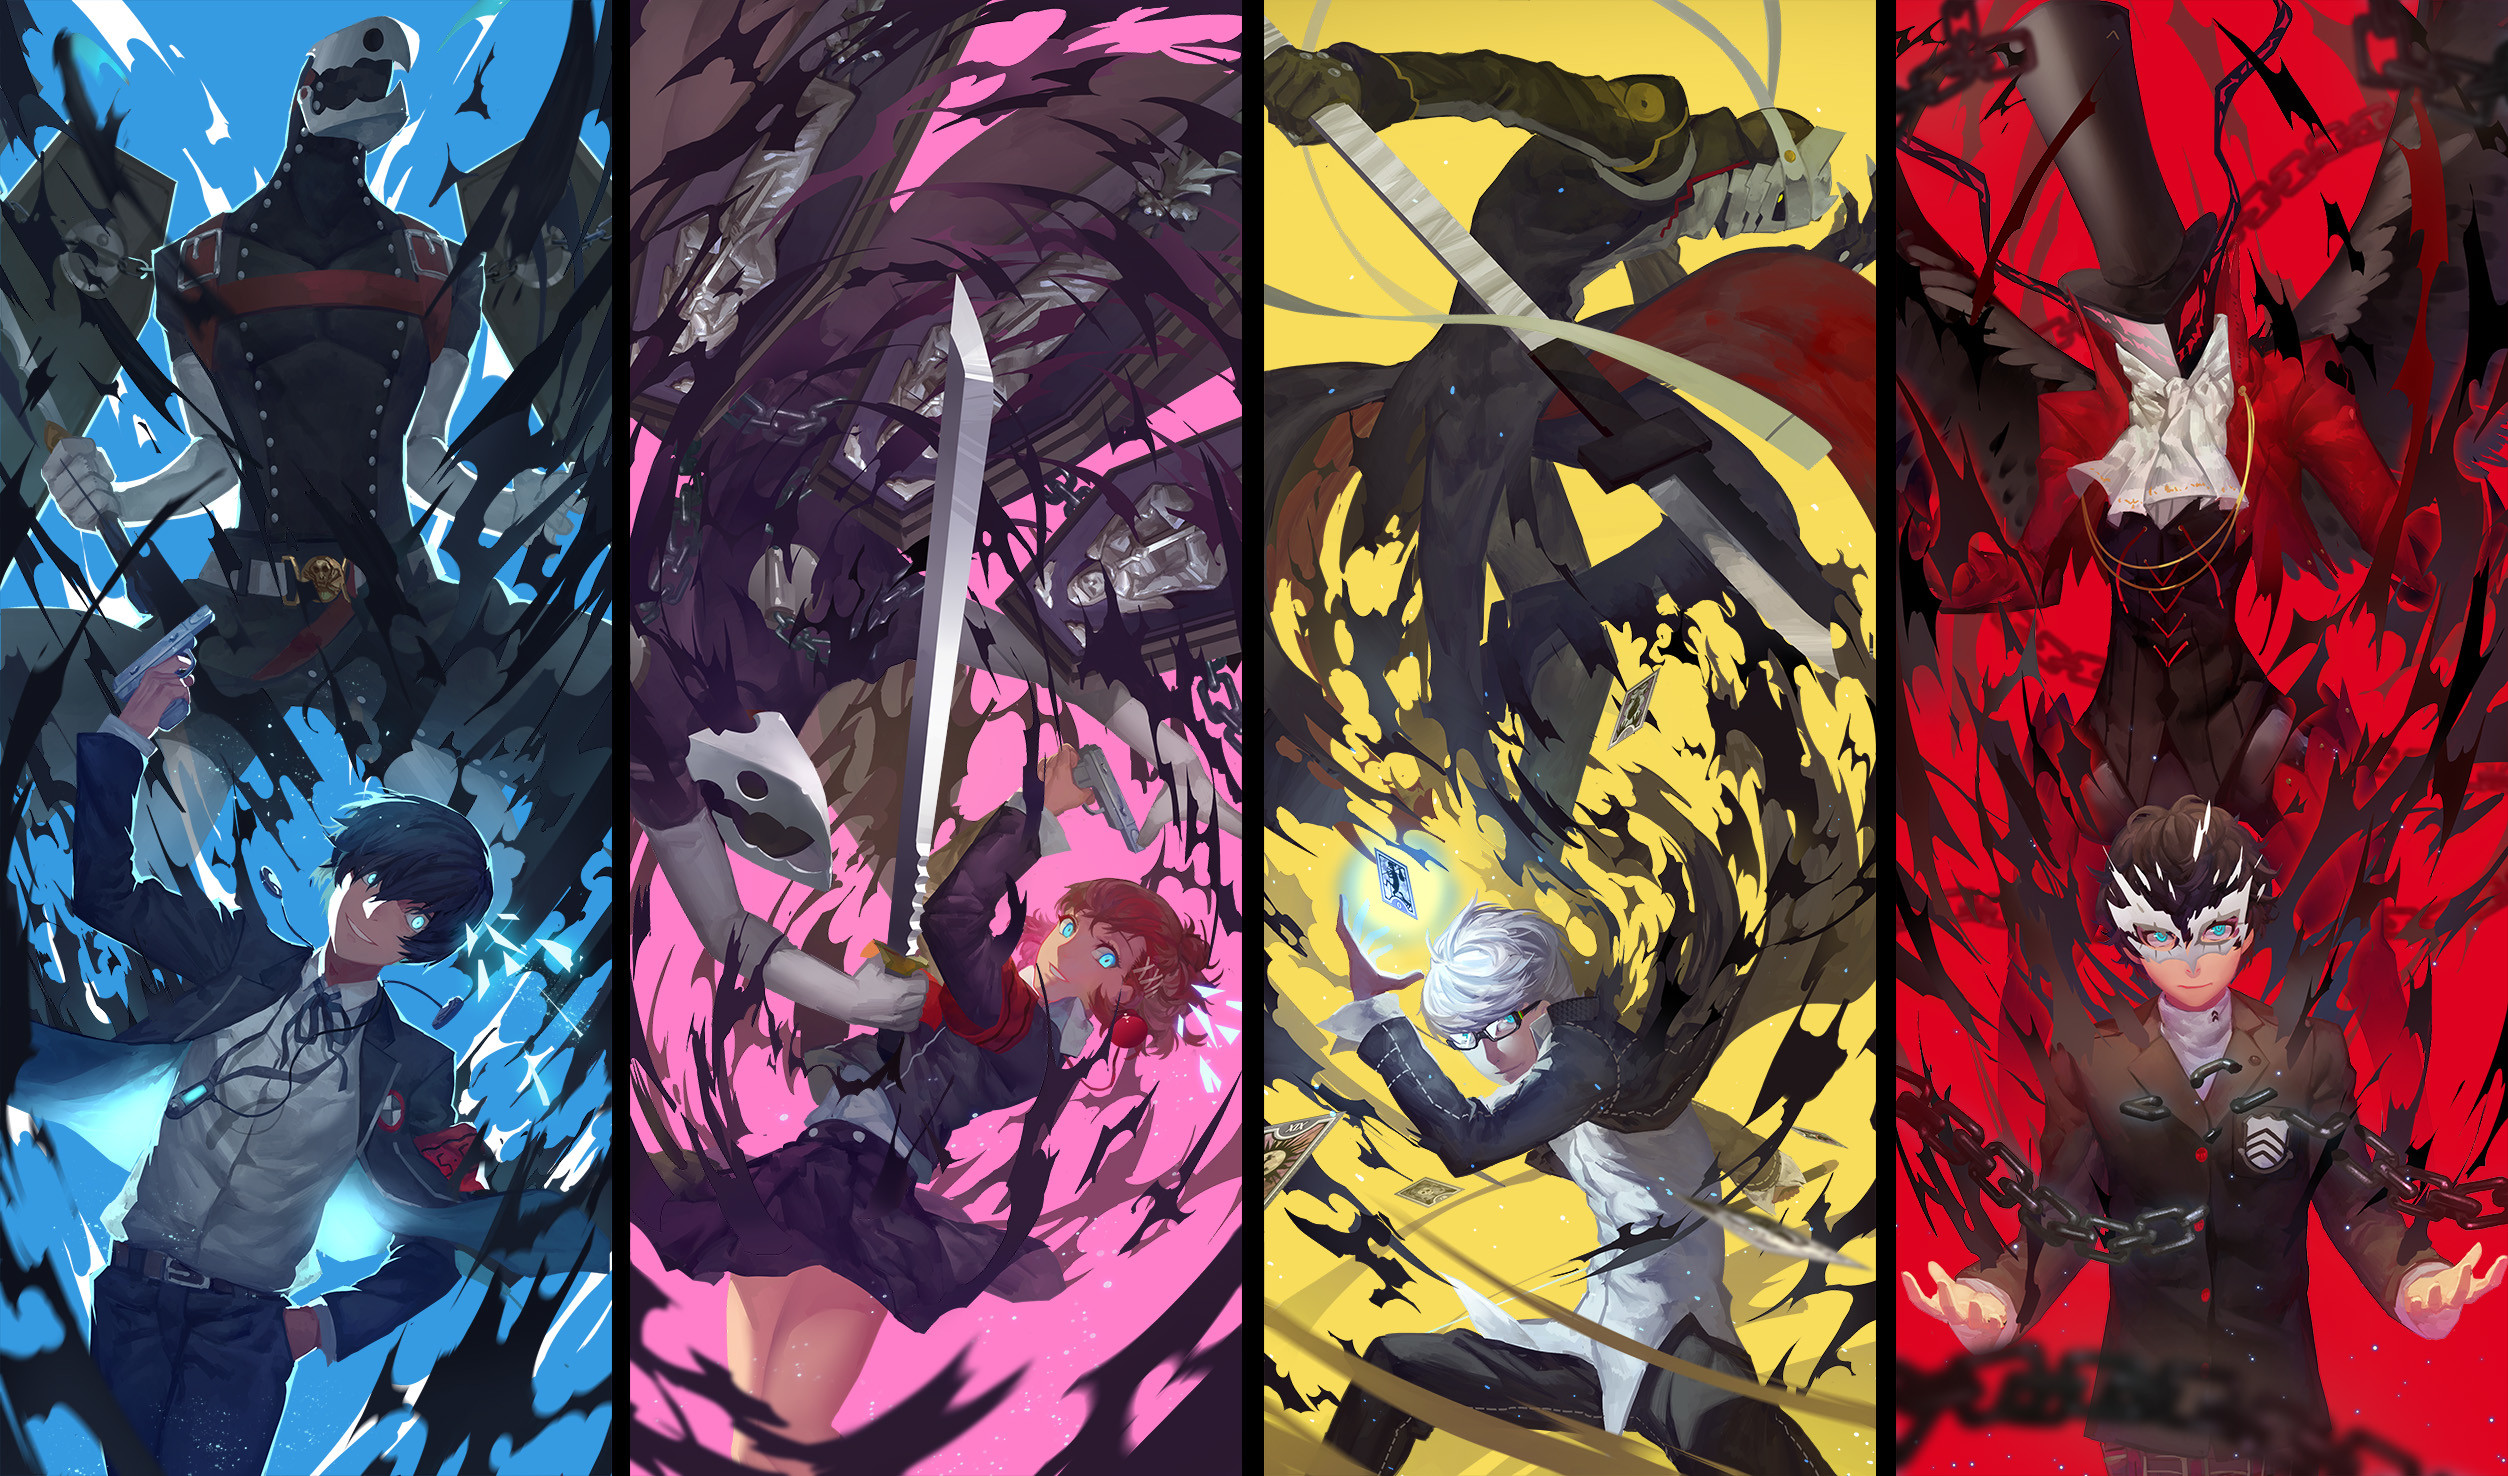 Pre-order the award-winning RPG, Persona 4 Golden, coming soon to | Images  Wallpapers | Pinterest | Wallpaper and RPG